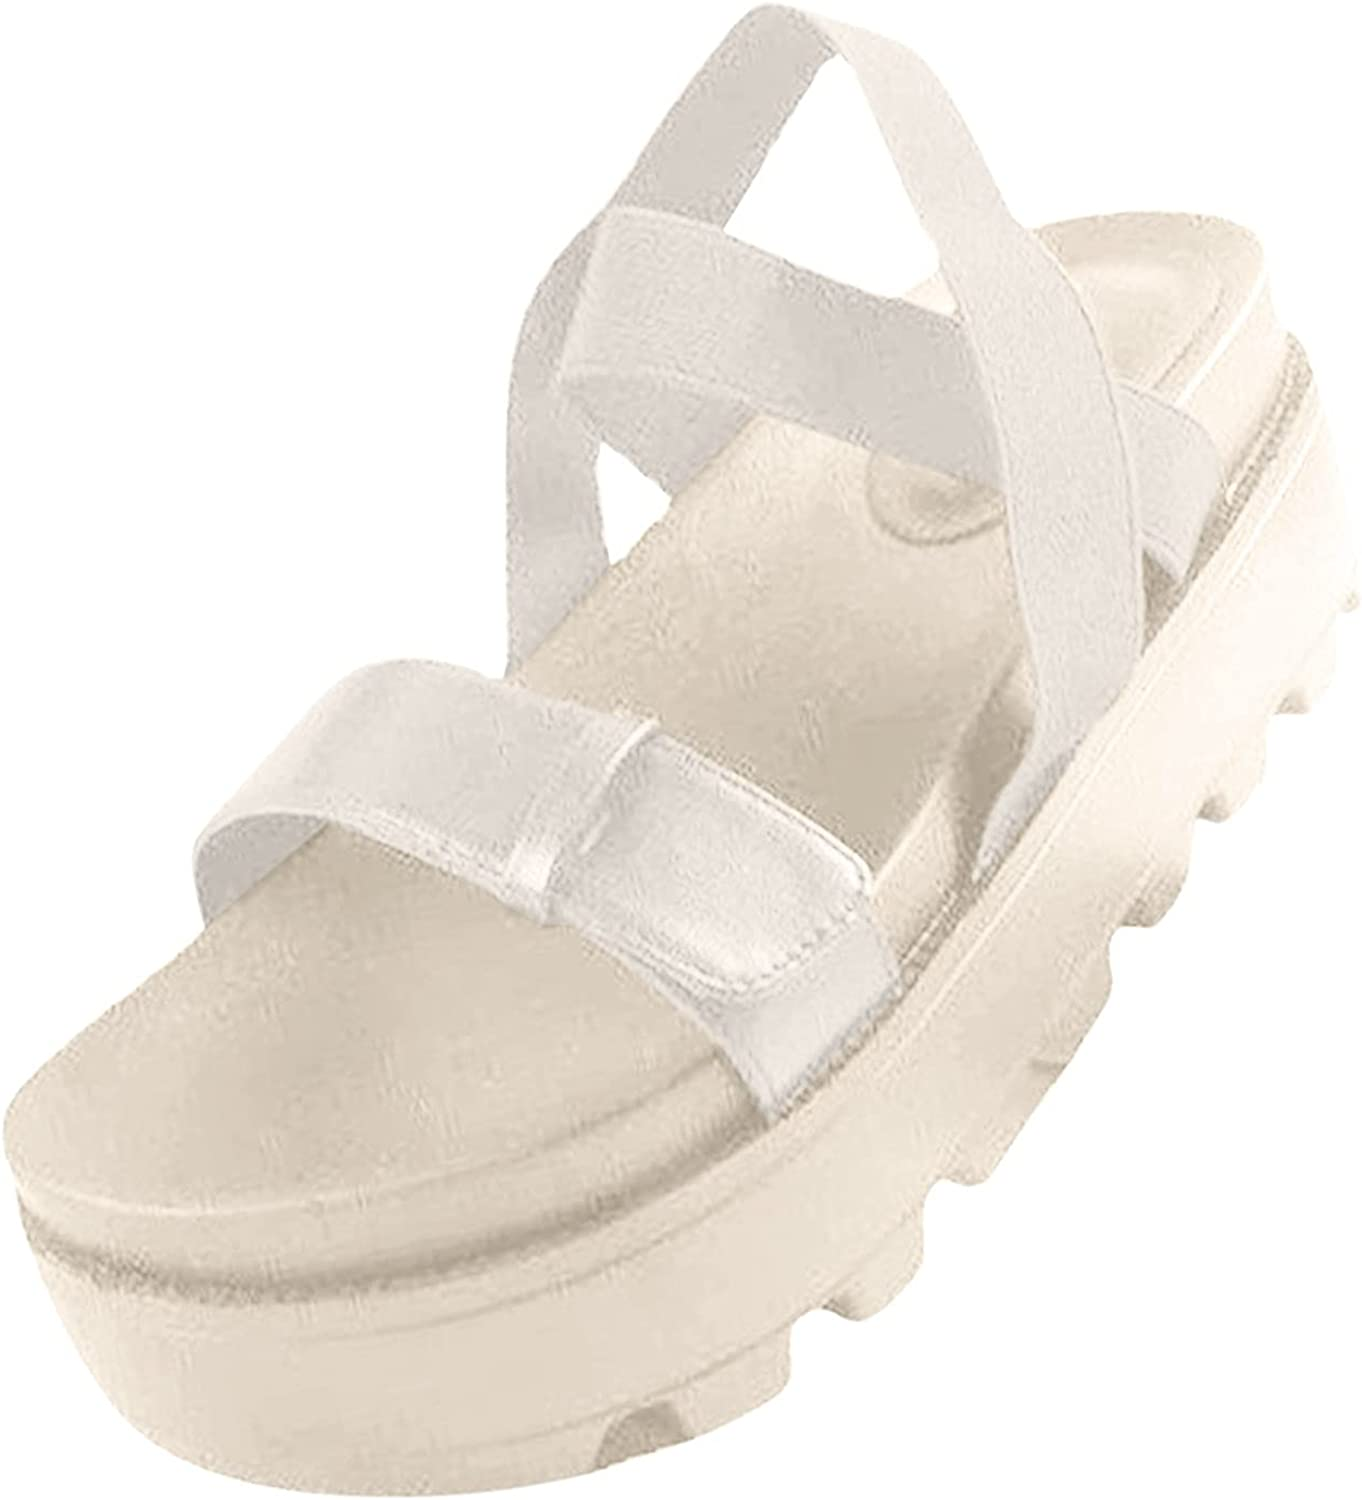 ZiSUGP Summer Large Size Roman Sandals With Thick Soles And Buckles